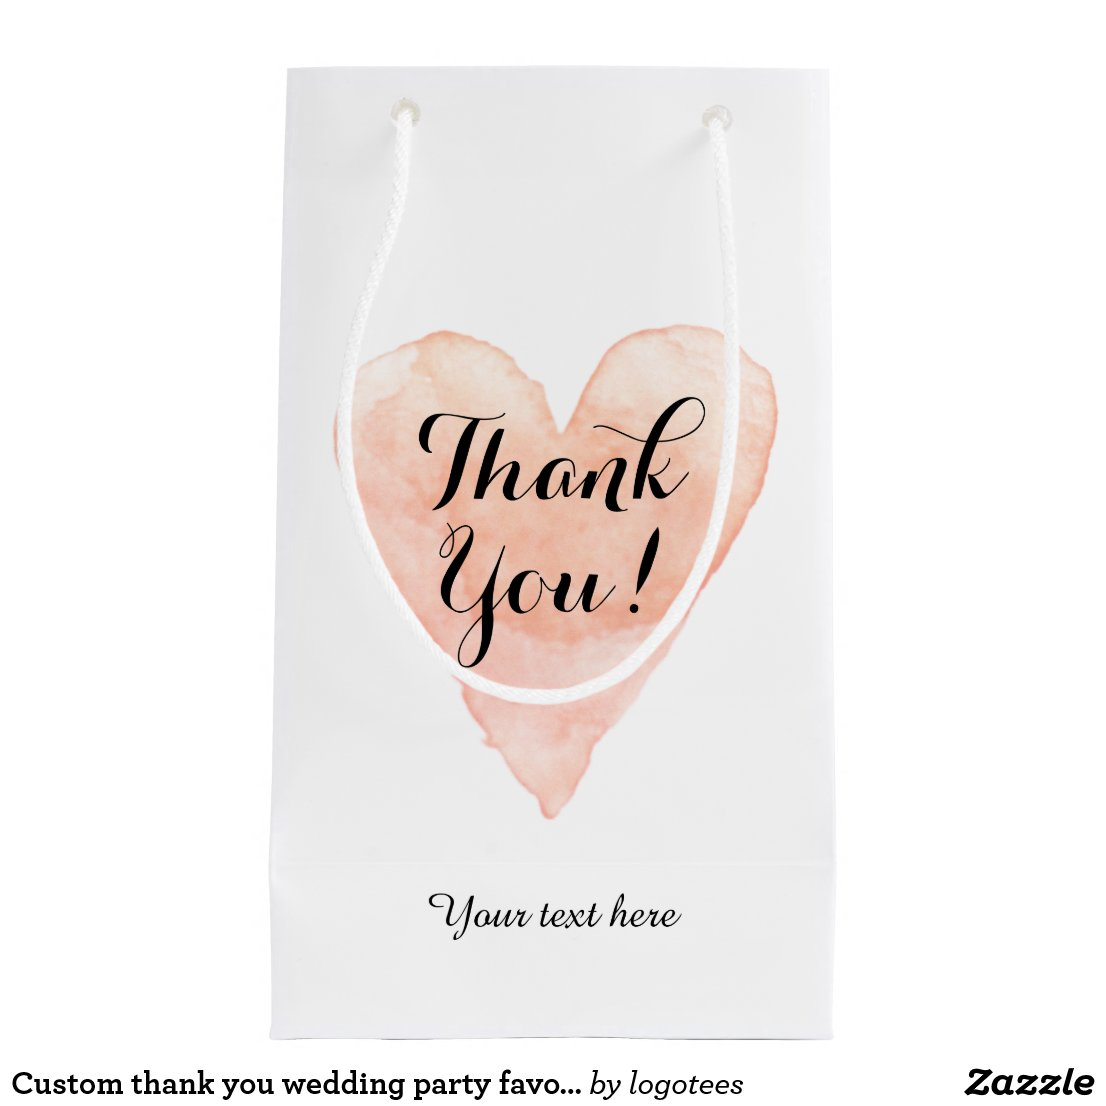 Custom thank you wedding party favour gift bags